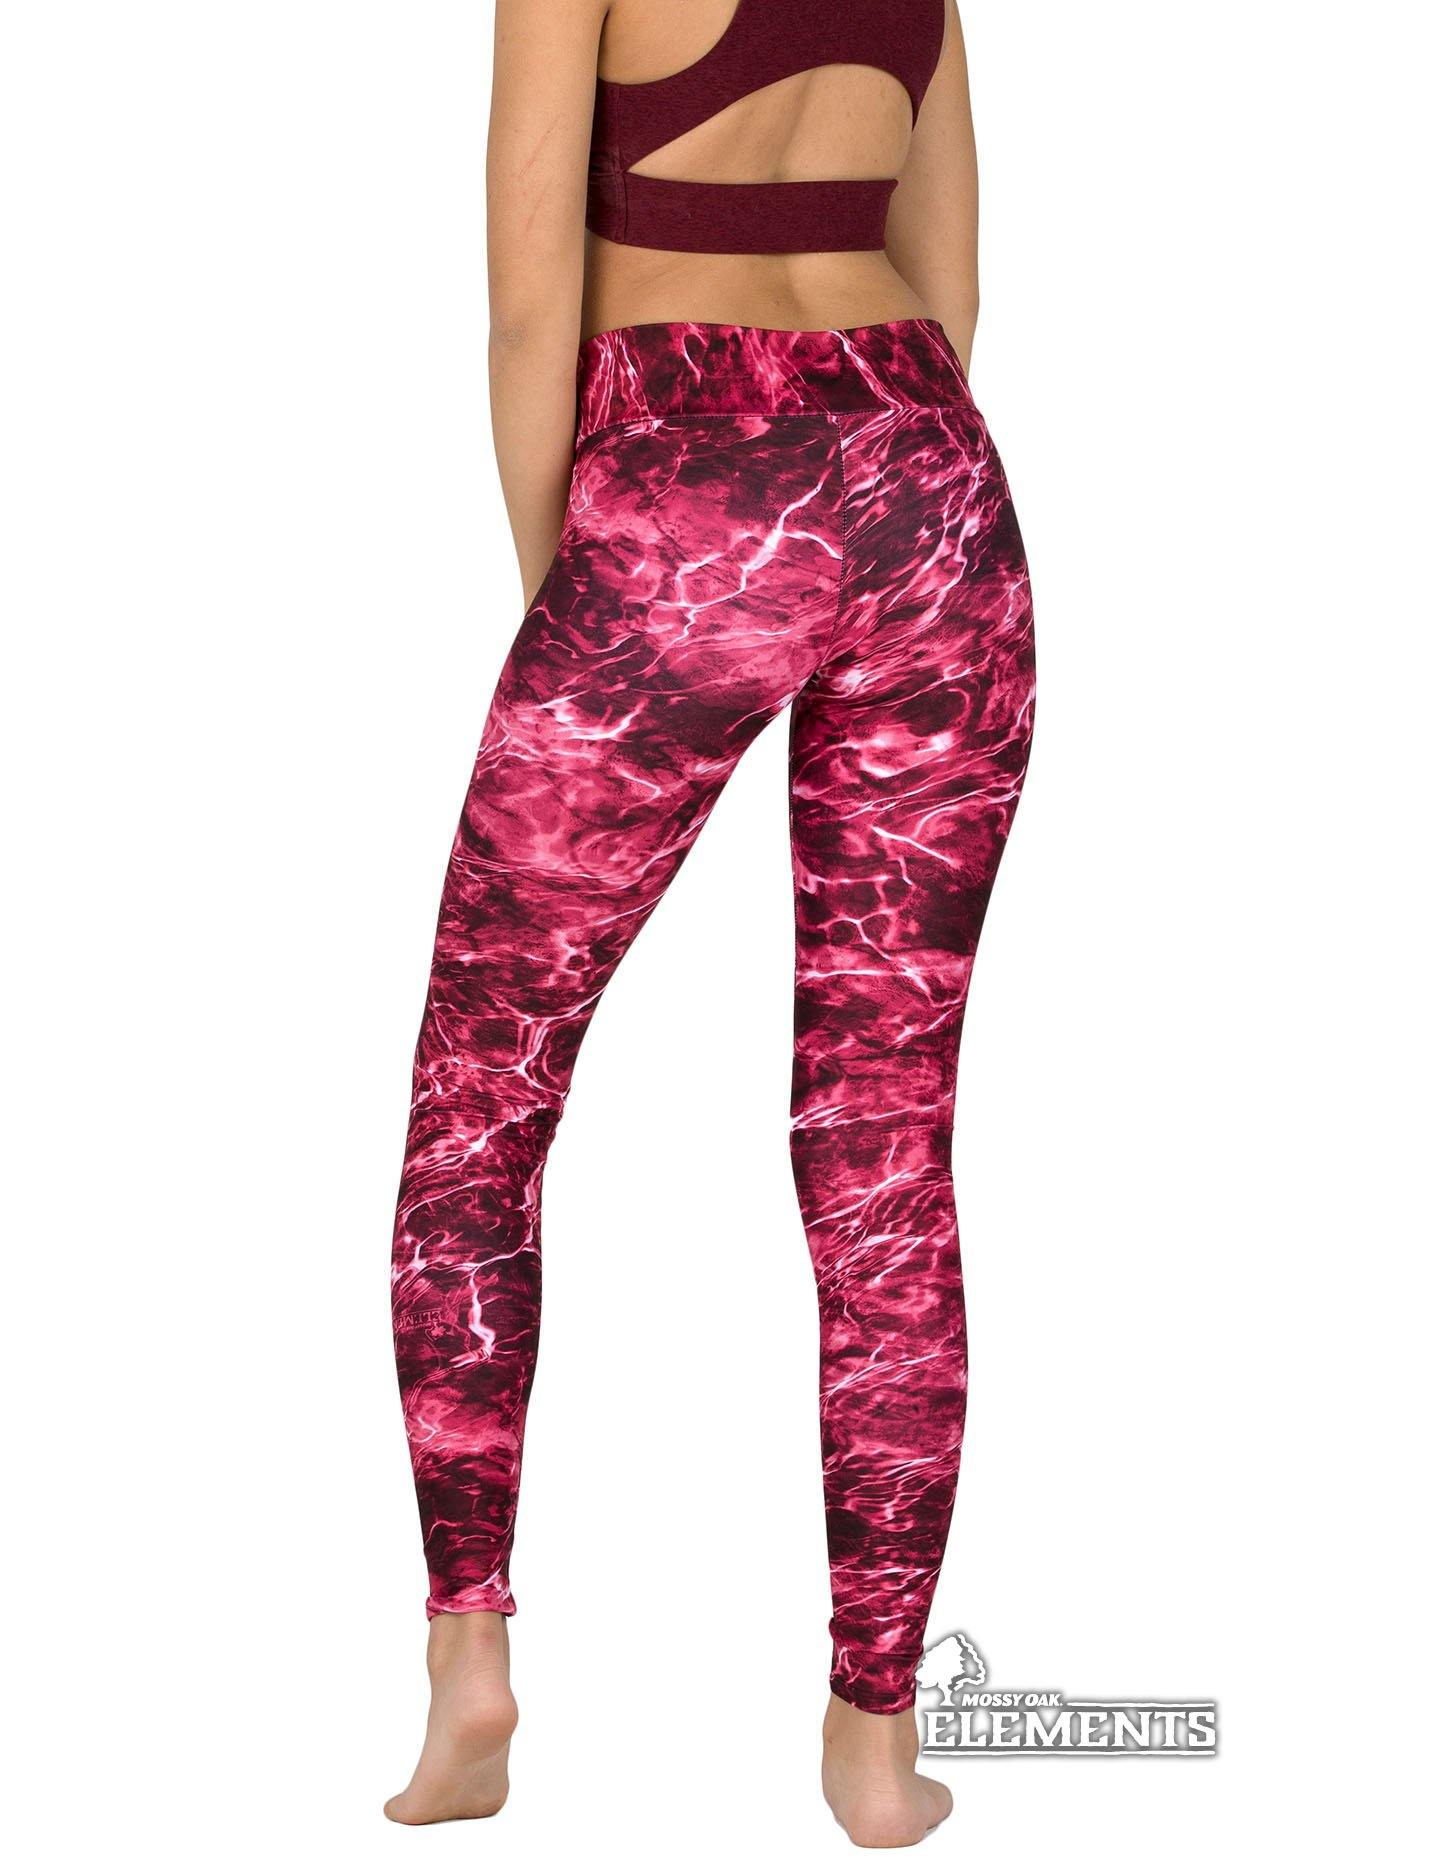 Apsara Leggings Low Waist Full Length, Mossy Oak Elements Crimson